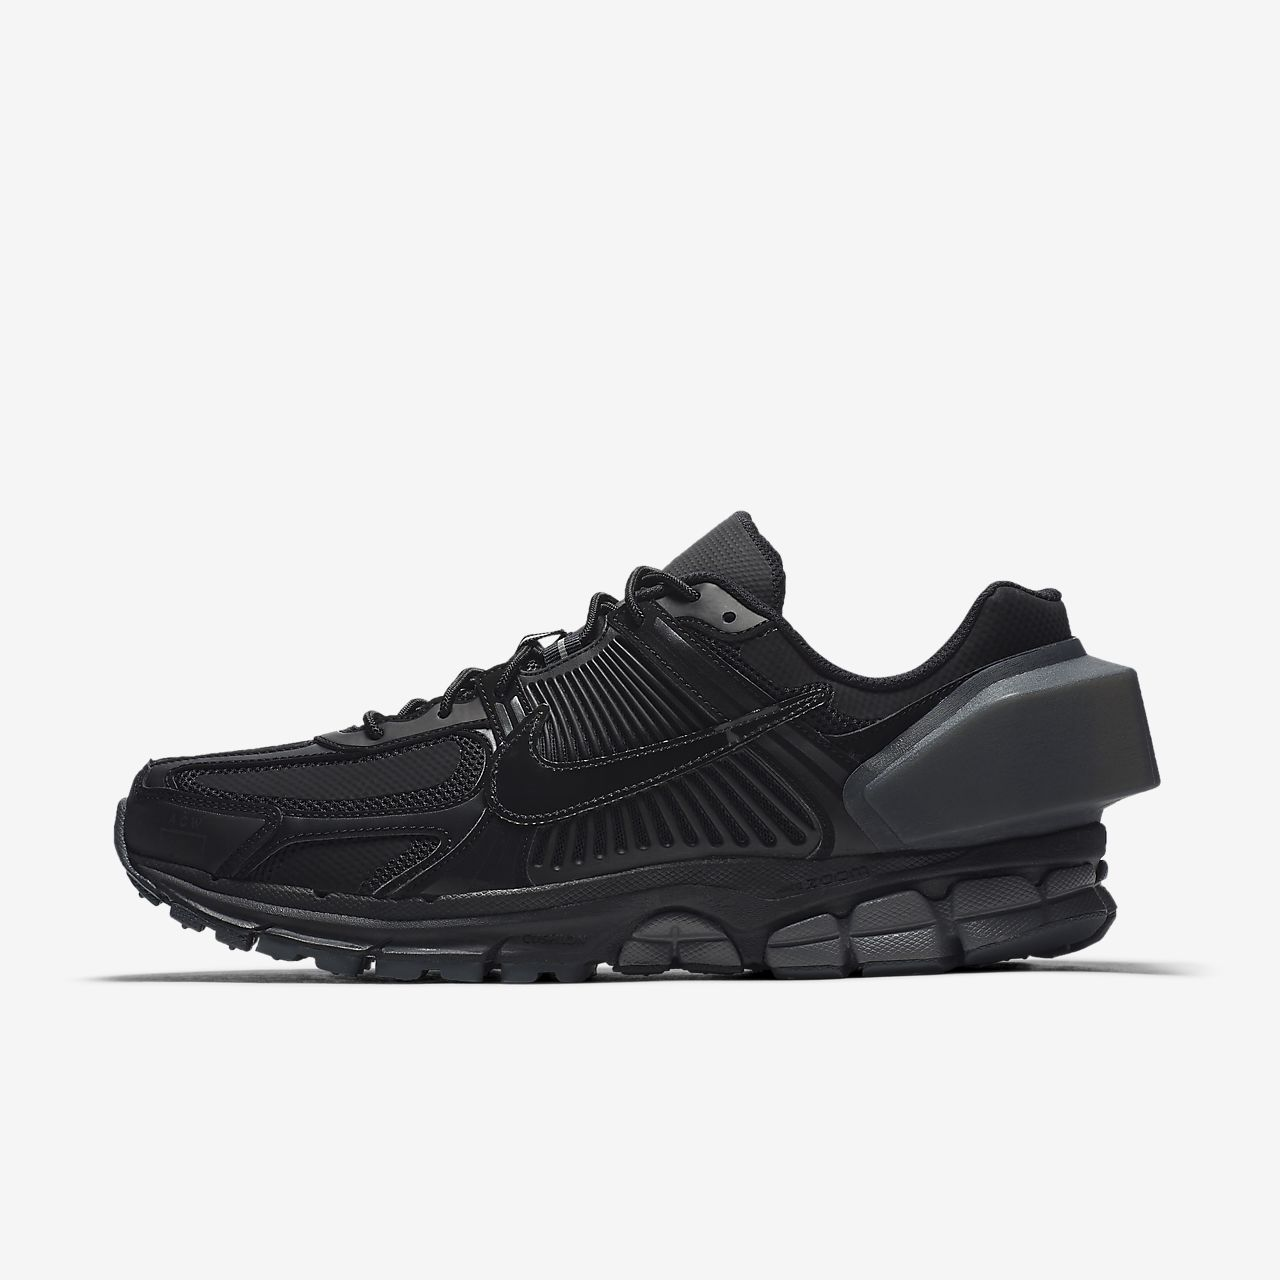 buy online d039c 7baf7 ... Nike x A-COLD-WALL  Zoom Vomero +5 Shoe